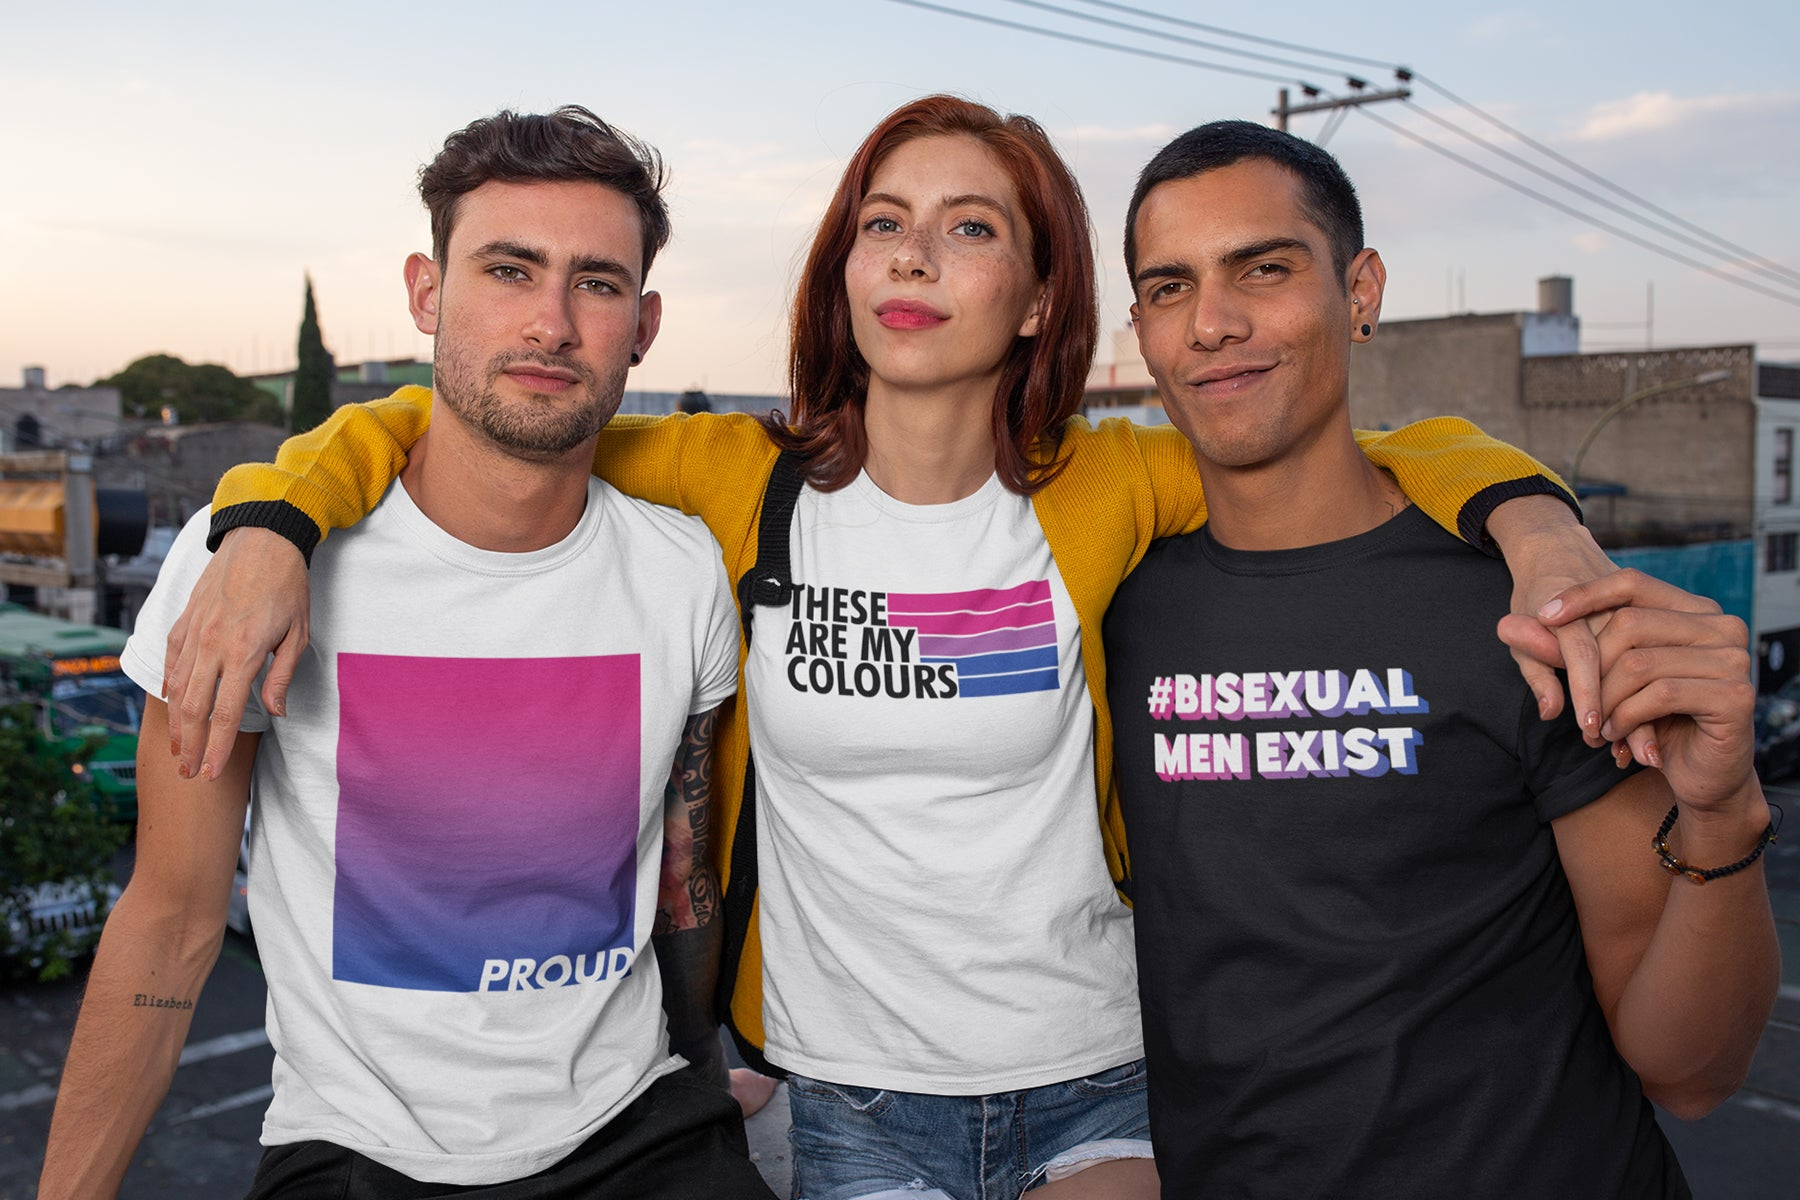 A group of 3 friends all wearing Bisexual themed Rainbow & Co shirts. The first person is a white man with brown hair wearing a white shirt featuring a bisexual flag gradient and the word PROUD, the second person is a white woman with red hair and lipstick wearing a white shirt featuring the bisexual flag and the words THESE ARE MY COLOURS, the third person is a brown man wearing a black shirt with the hashtag #BisexualMenExist.